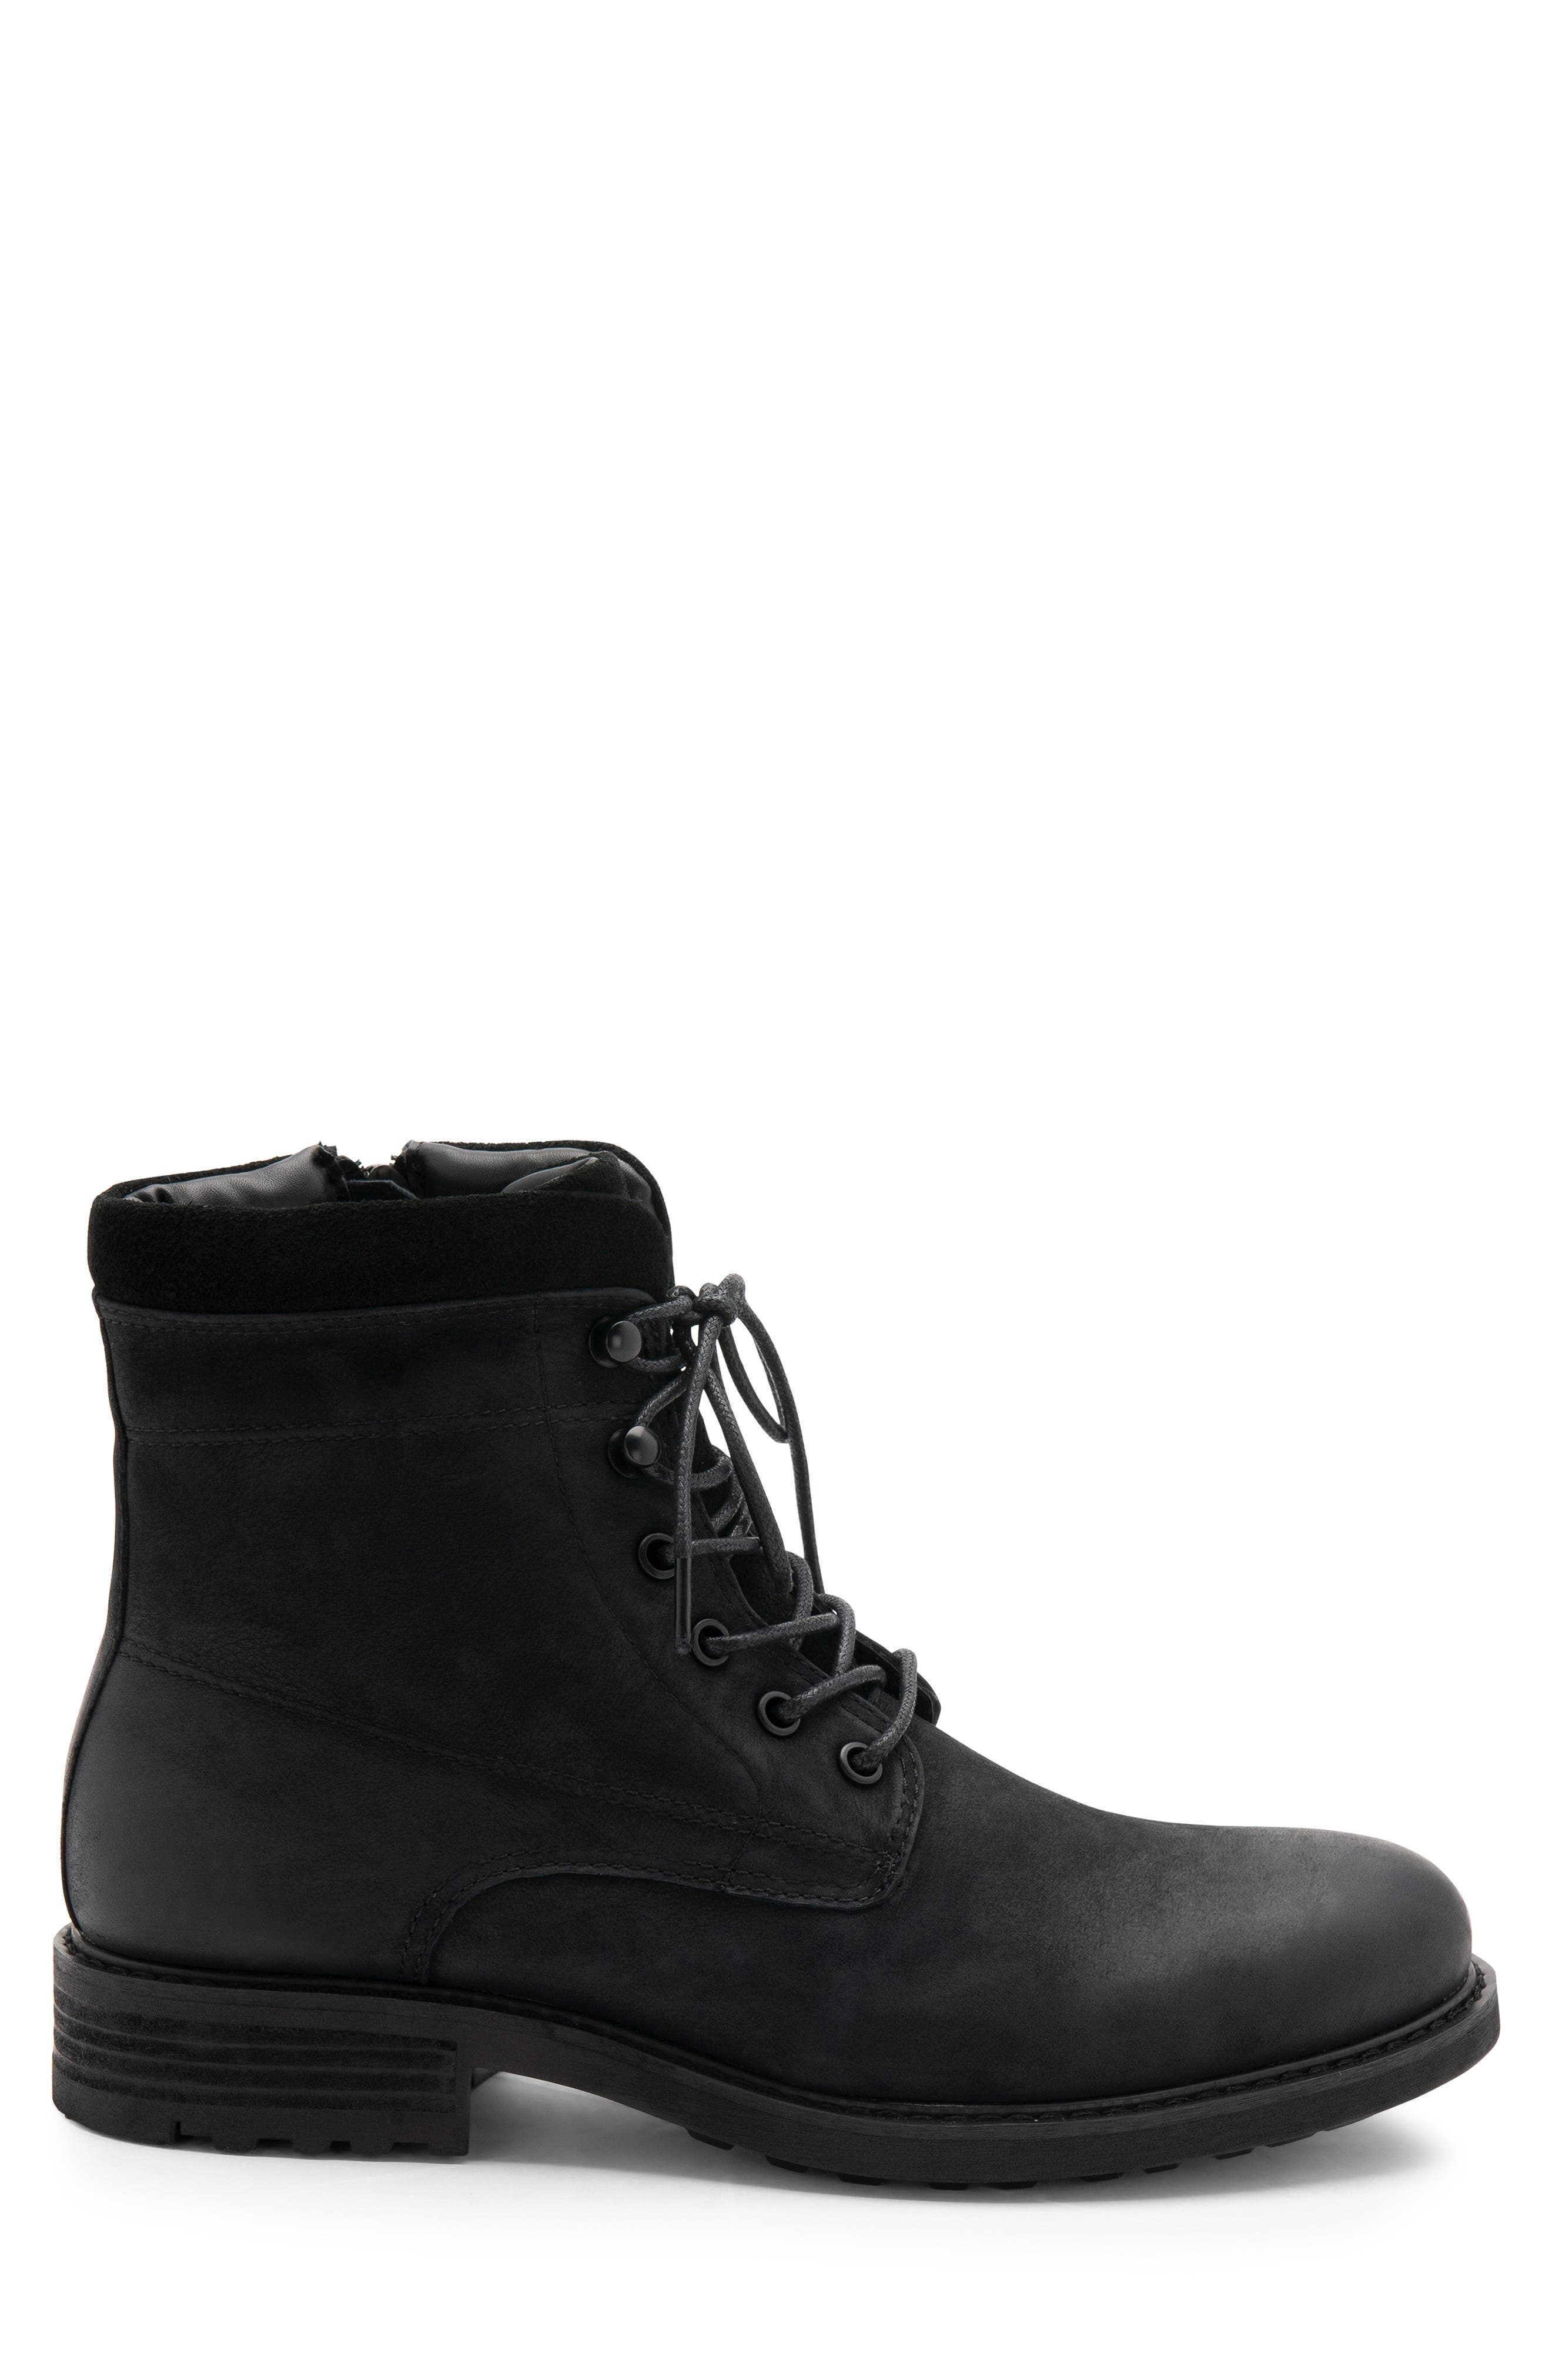 BLONDO, Patton Waterproof Plain Toe Boot, Alternate thumbnail 3, color, BLACK NUBUCK